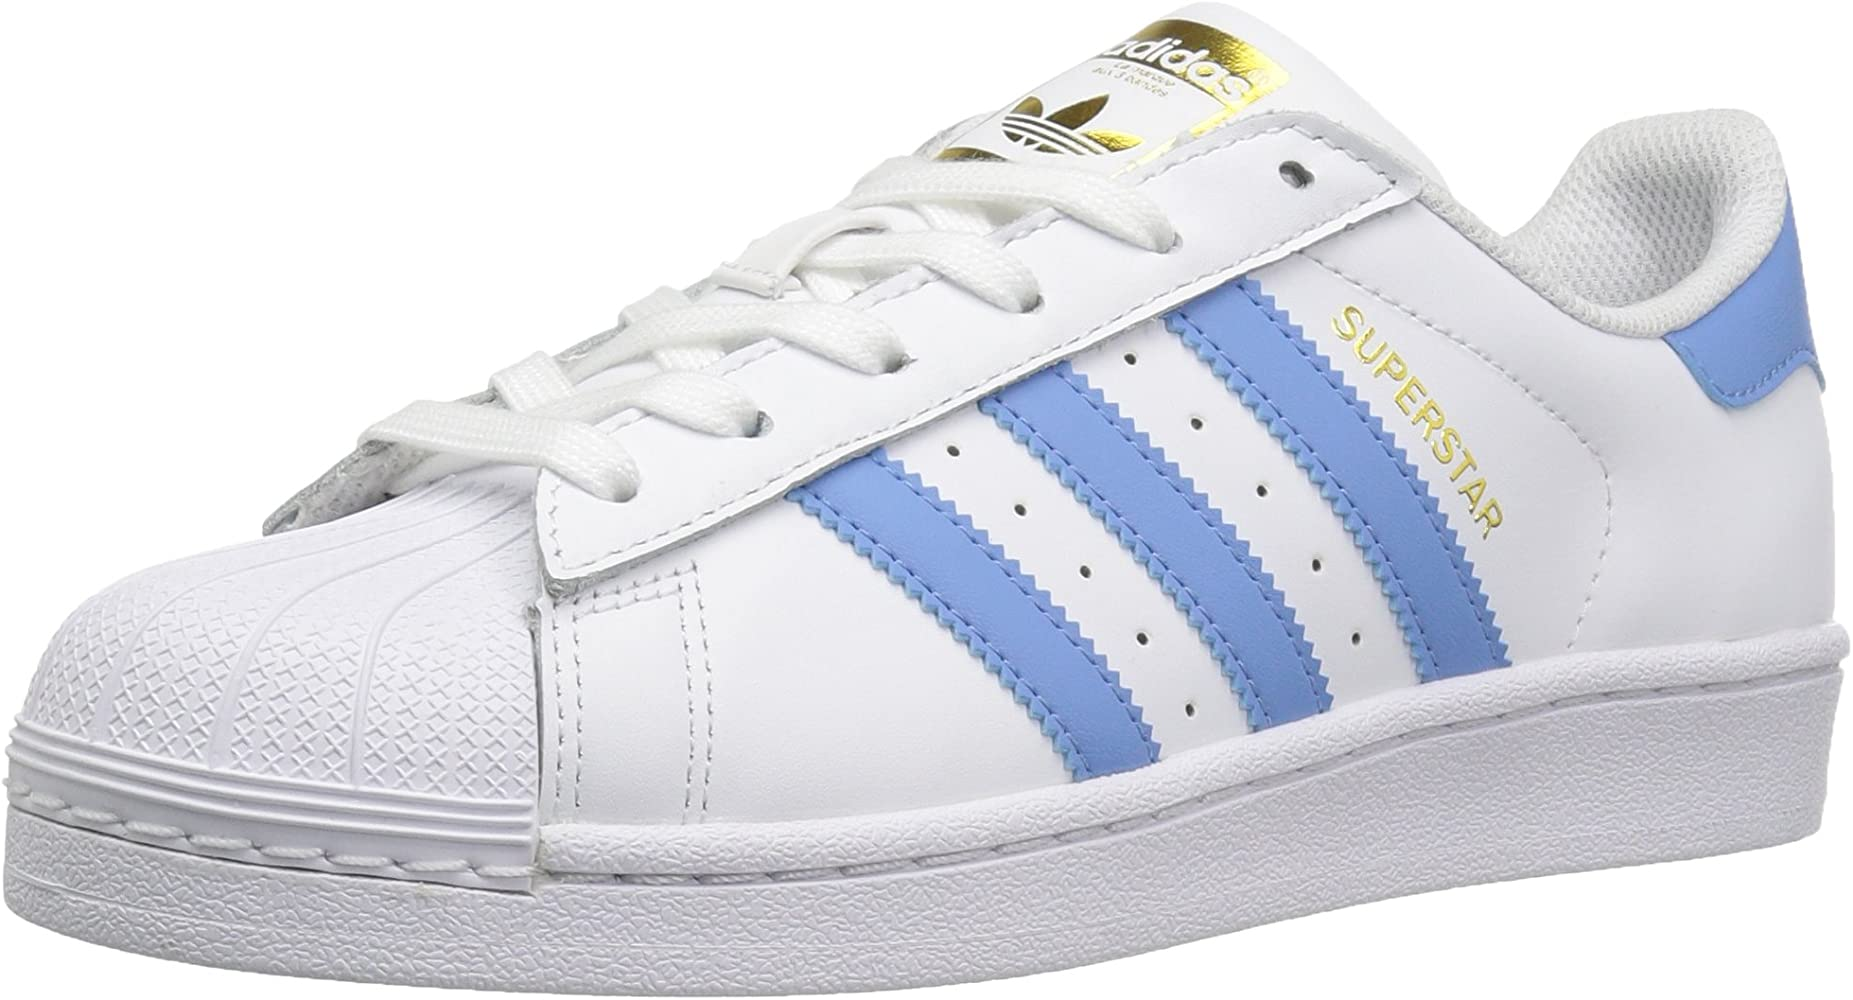 | adidas Originals Women's Superstar Shoes